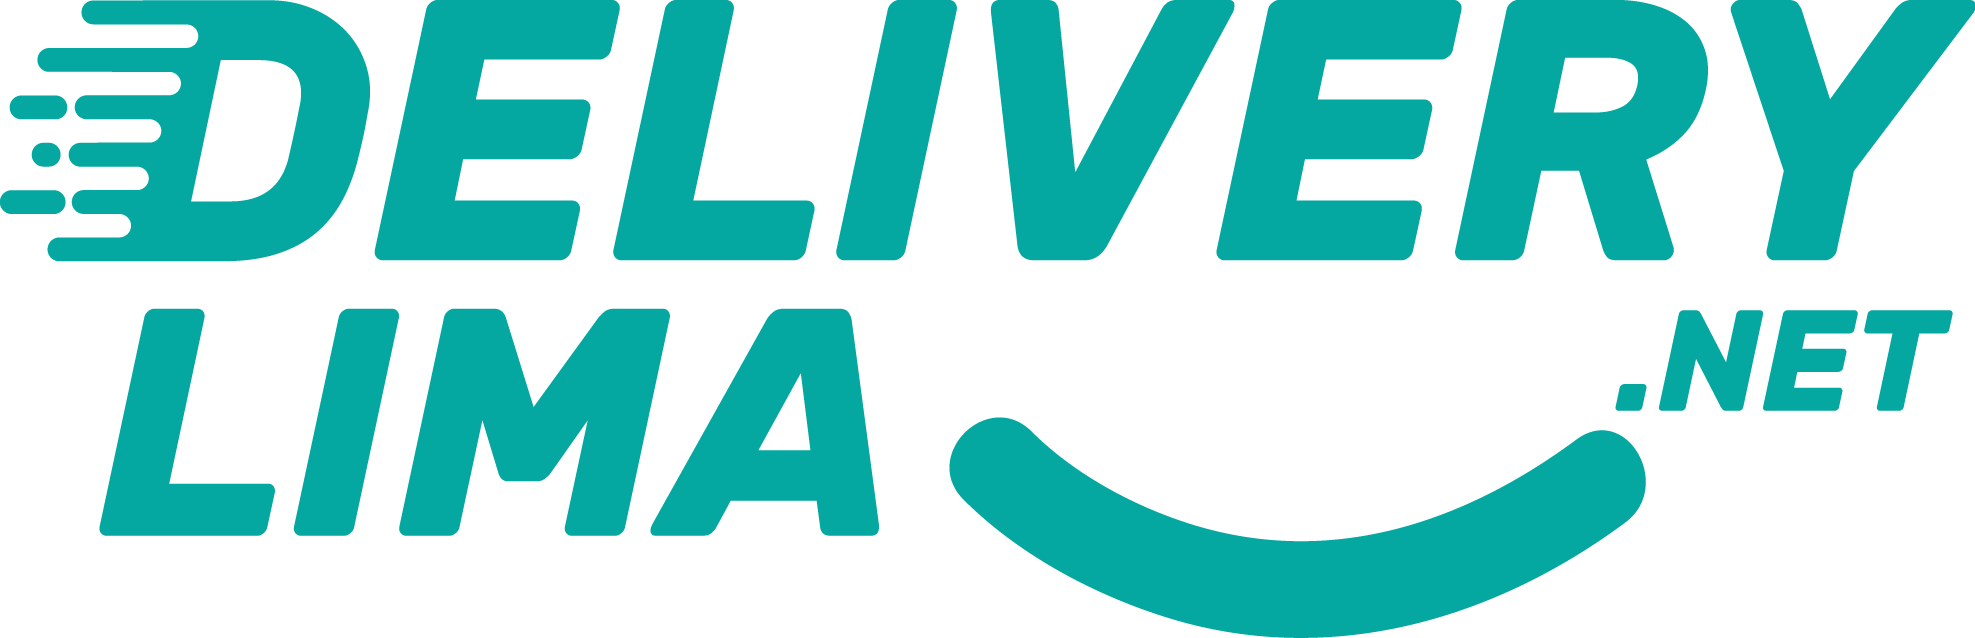 Delivery Lima Logo